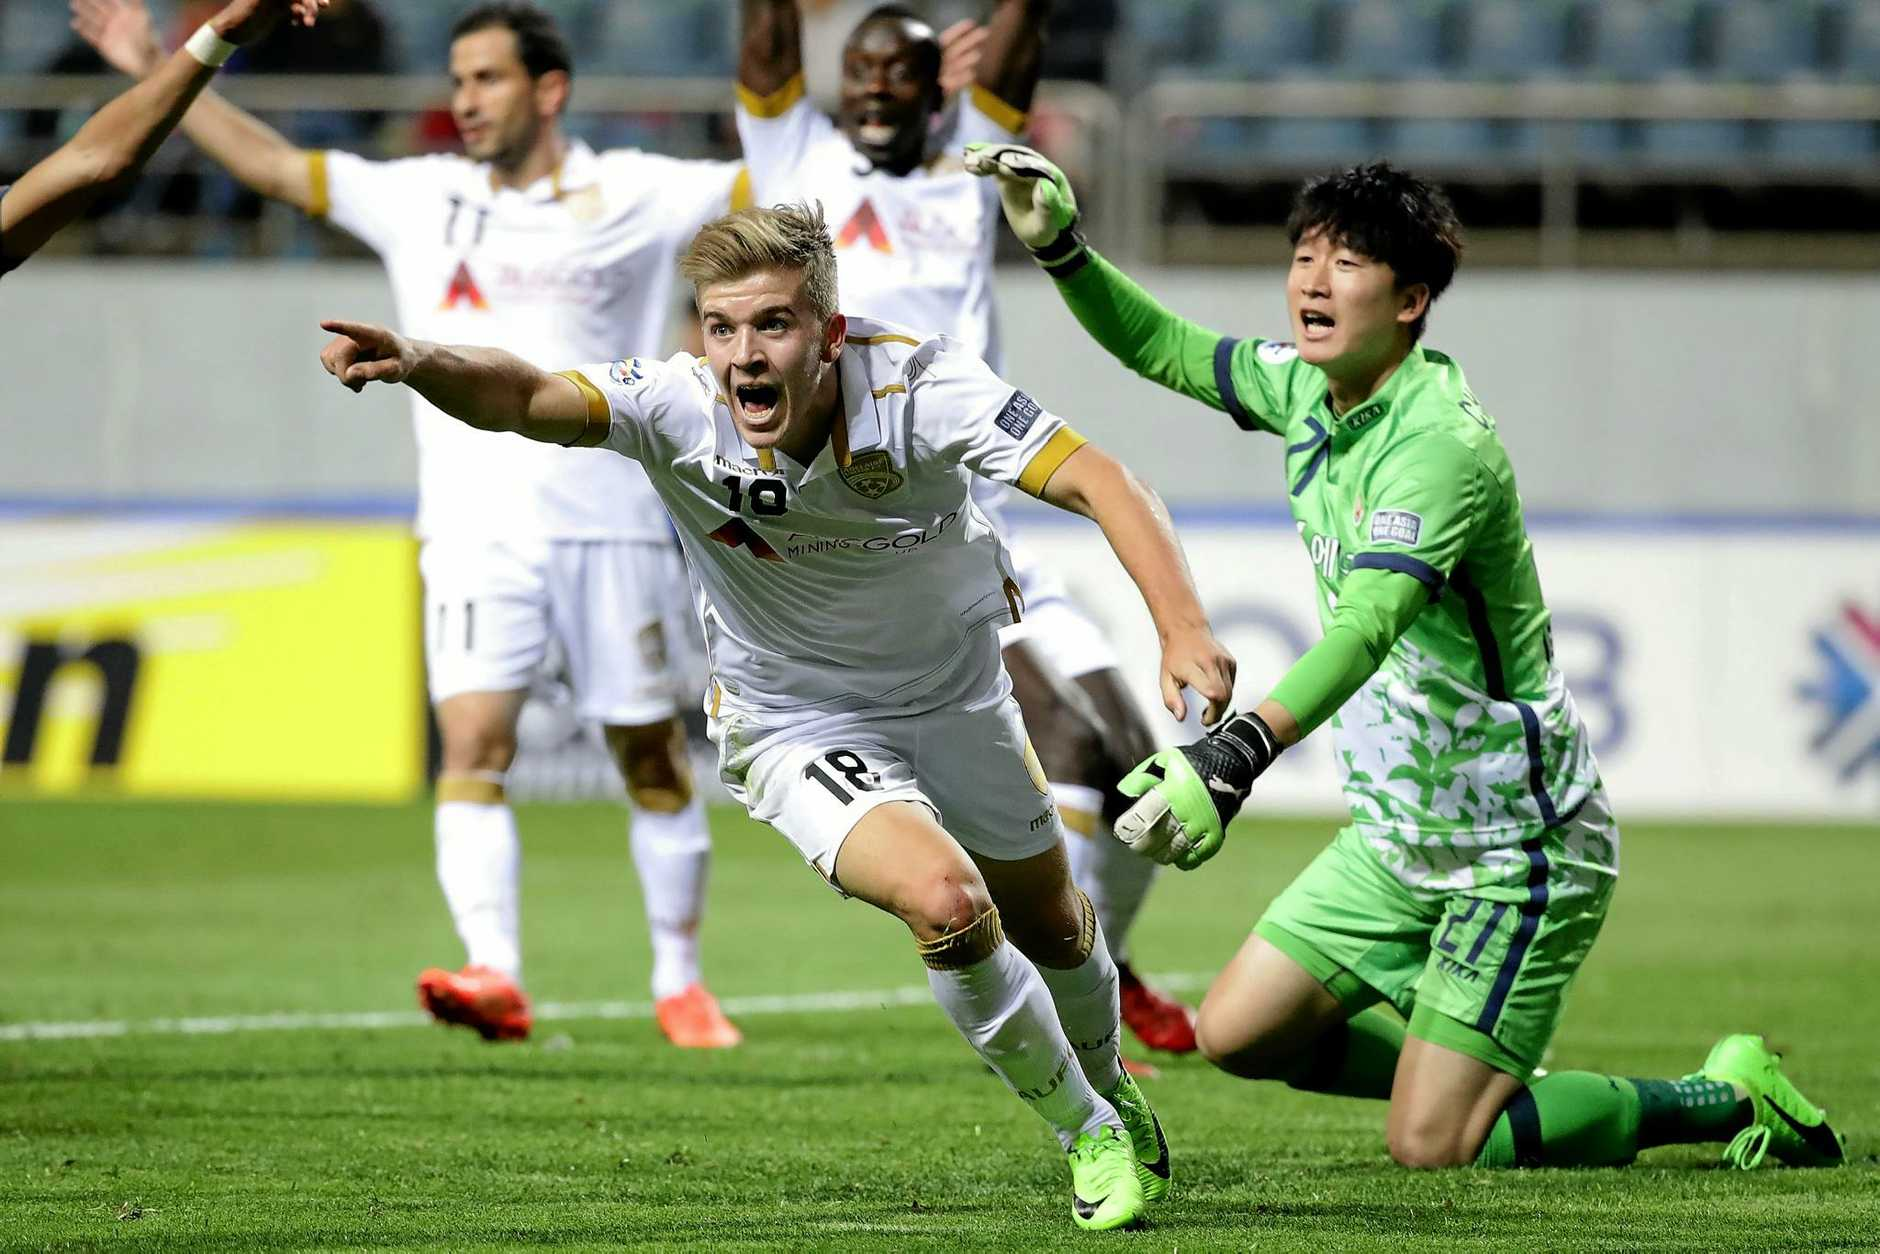 SEOGWIPO, SOUTH KOREA - APRIL 11:  Riley Patrick Mcgree of Adelaide United celebrates after scoring a goal during the AFC Champions League Group H match between Jeju United FC and Adelaide United at Jeju World Cup Stadium on April 11, 2017 in Seogwipo, South Korea.  (Photo by Chung Sung-Jun/Getty Images)